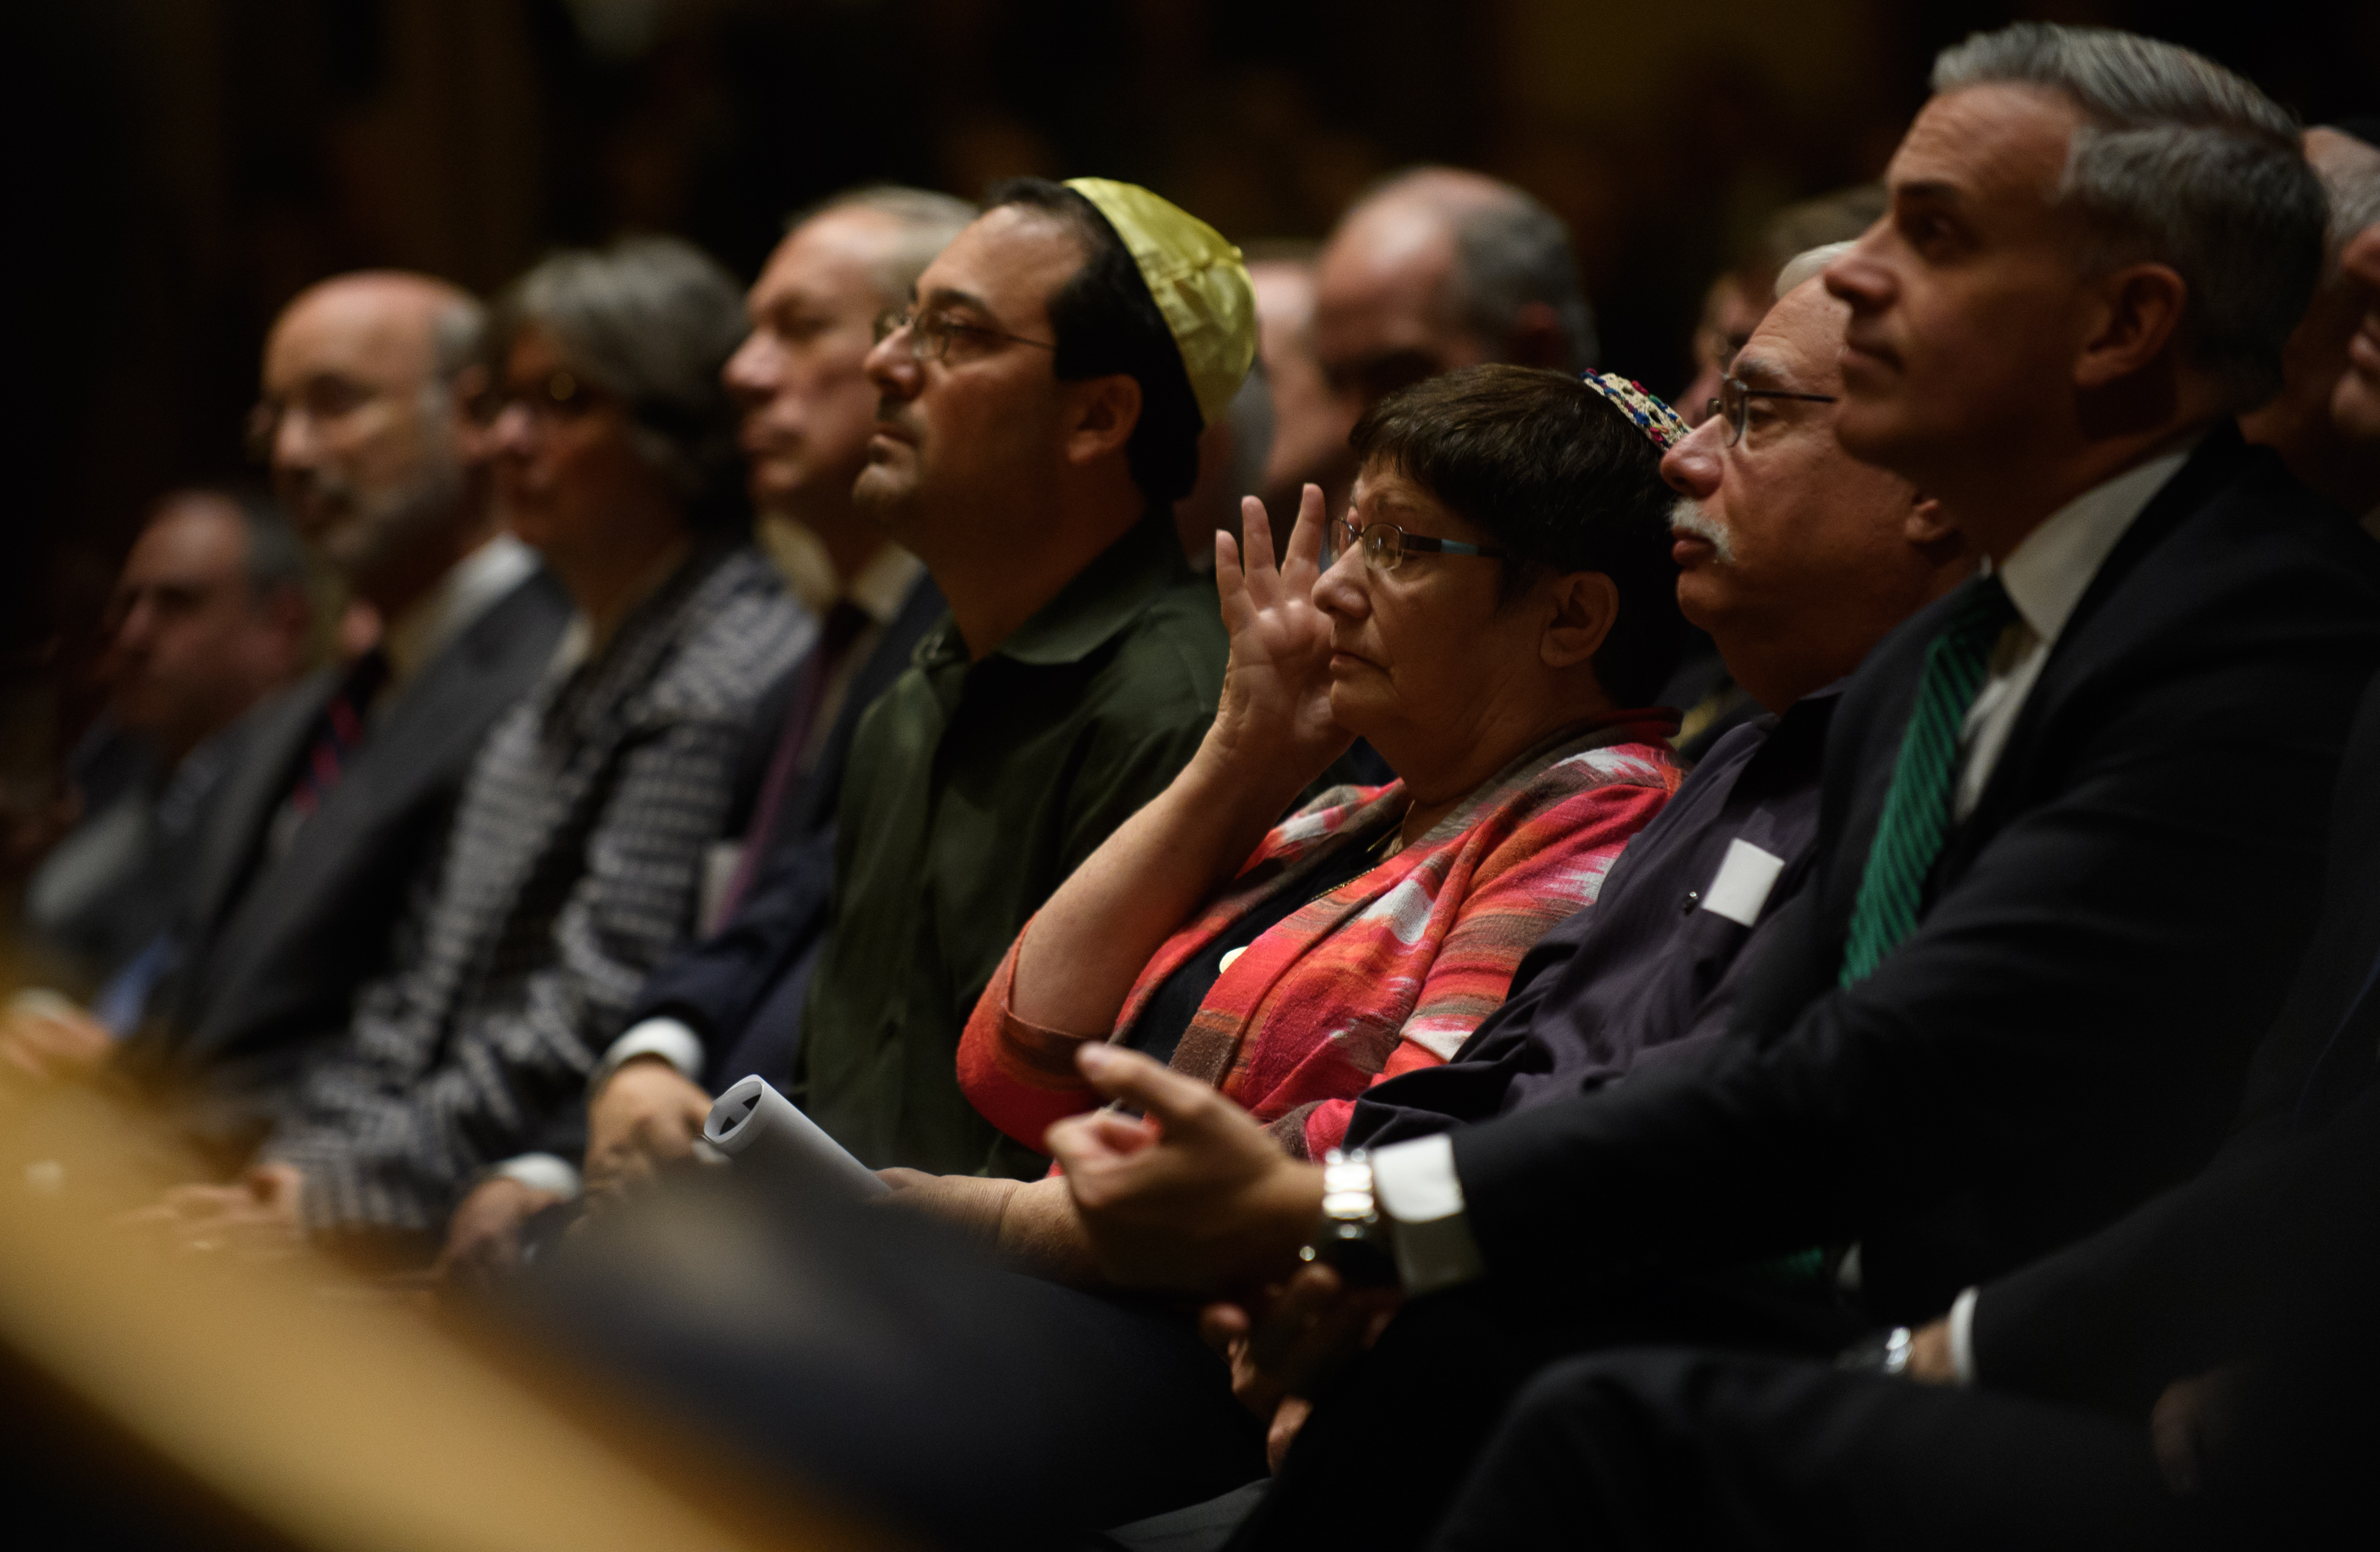 People listen to interfaith speakers at the Soldiers and Sailors Memorial Hall before a service to honor and mourn the victims of Saturday's mass shooting at the Tree Of Life Synagogue on October 28, 2018 in Pittsburgh, Pennsylvania. Jeff Swensen/Getty Images